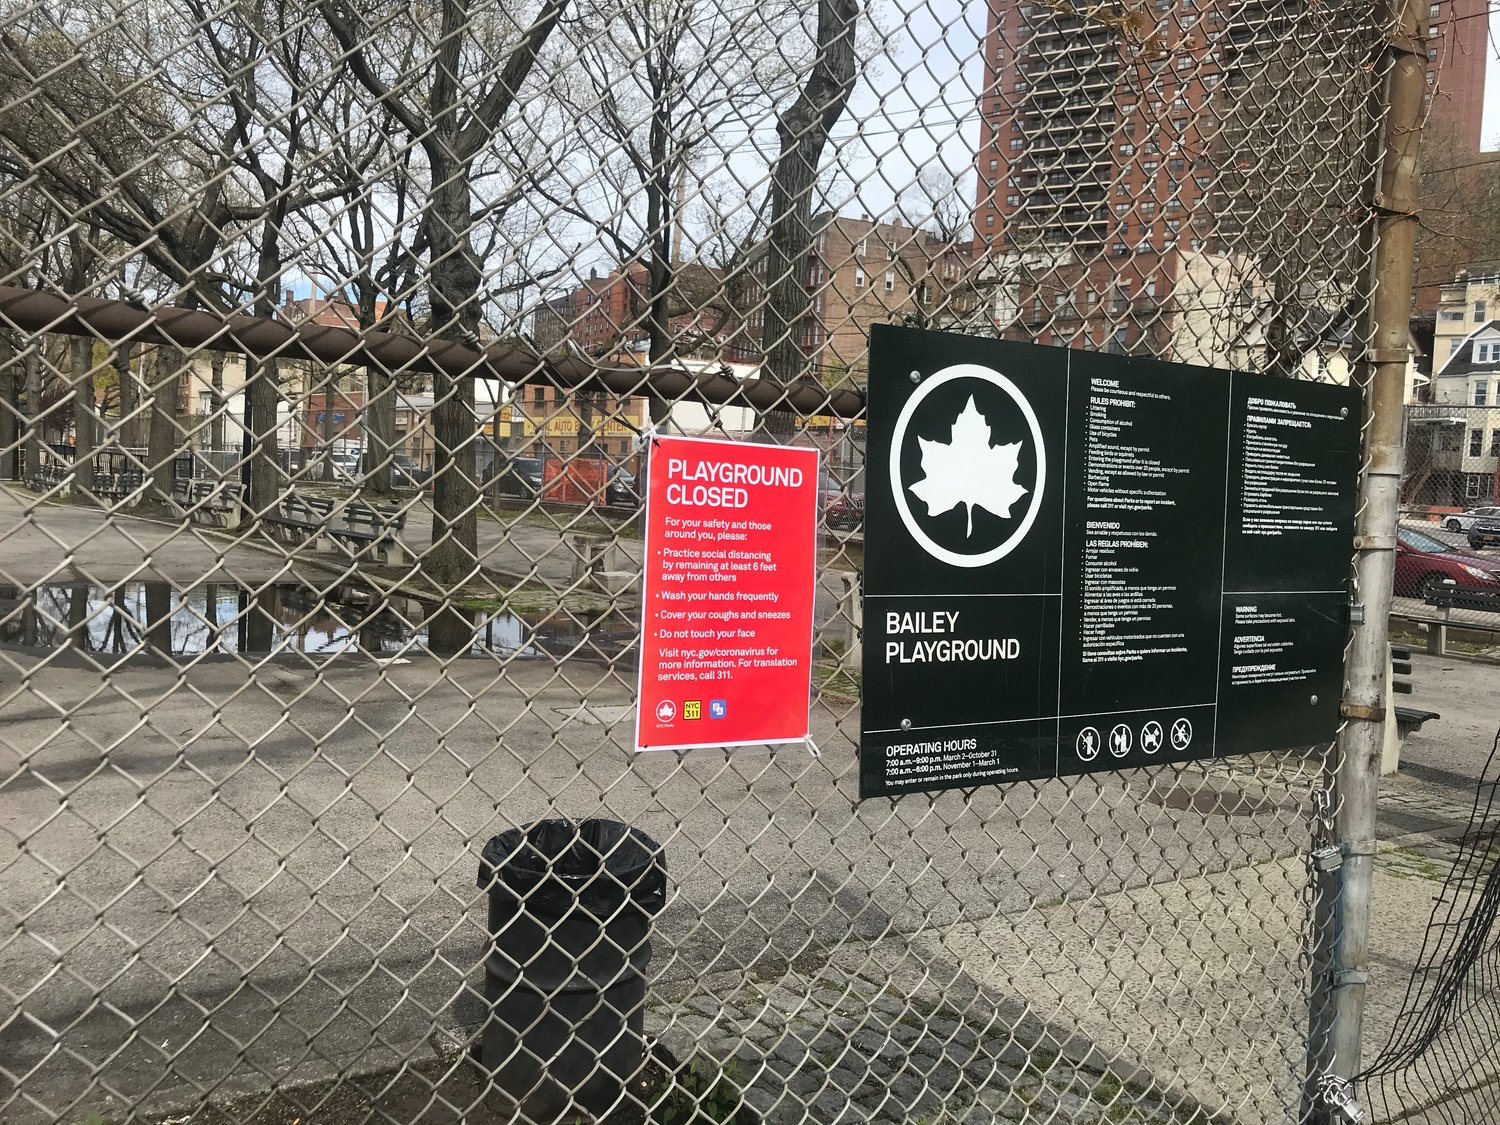 Bailey Playground between West 234th and West 237th streets remains closed during the coronavirus pandemic statewide lockdown.